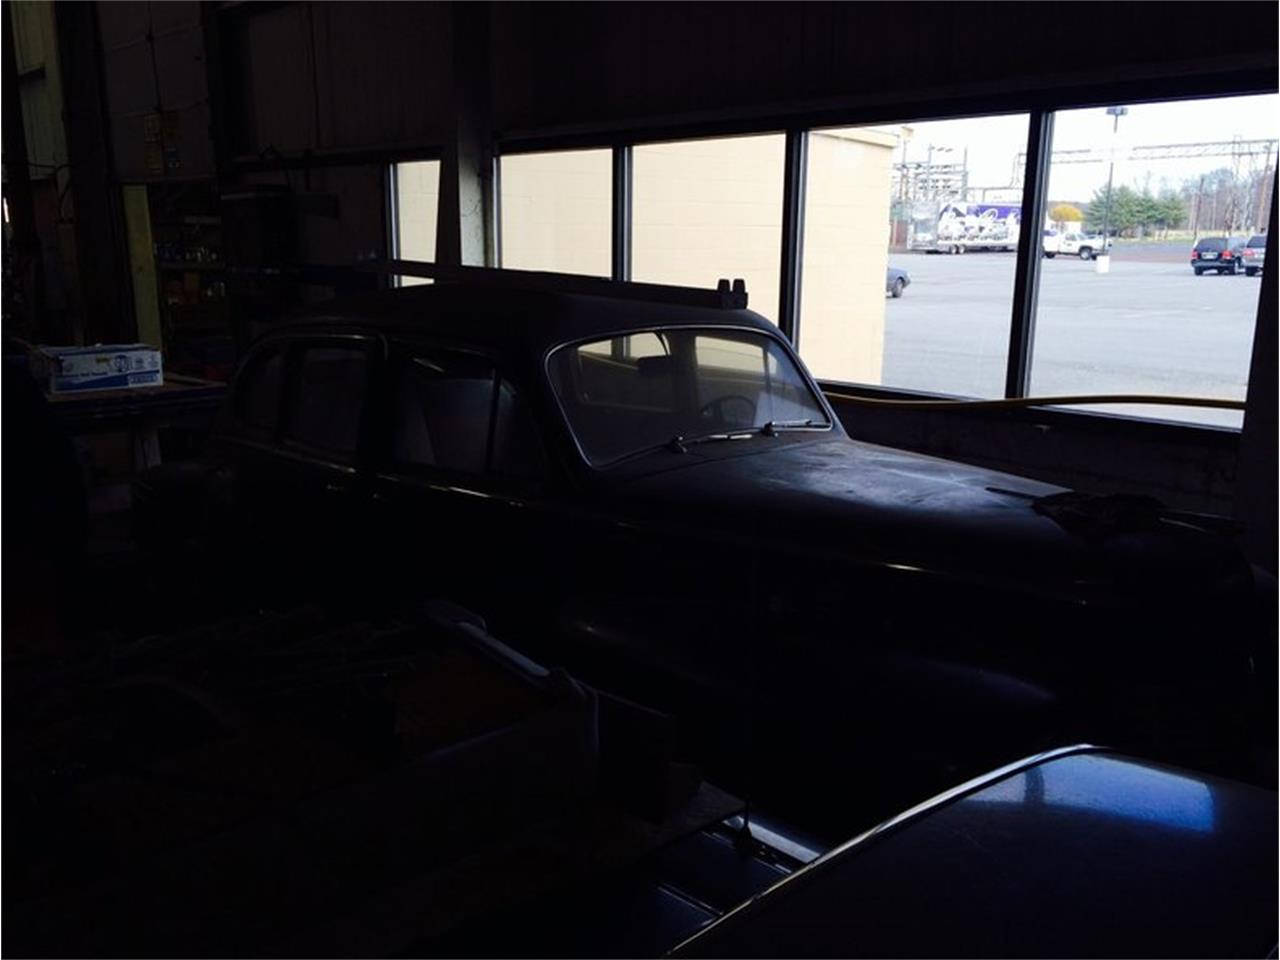 Large Picture of Classic '48 Zepher 12 cyl No motor or seats located in Morgantown Pennsylvania - $8,995.00 - LHDK